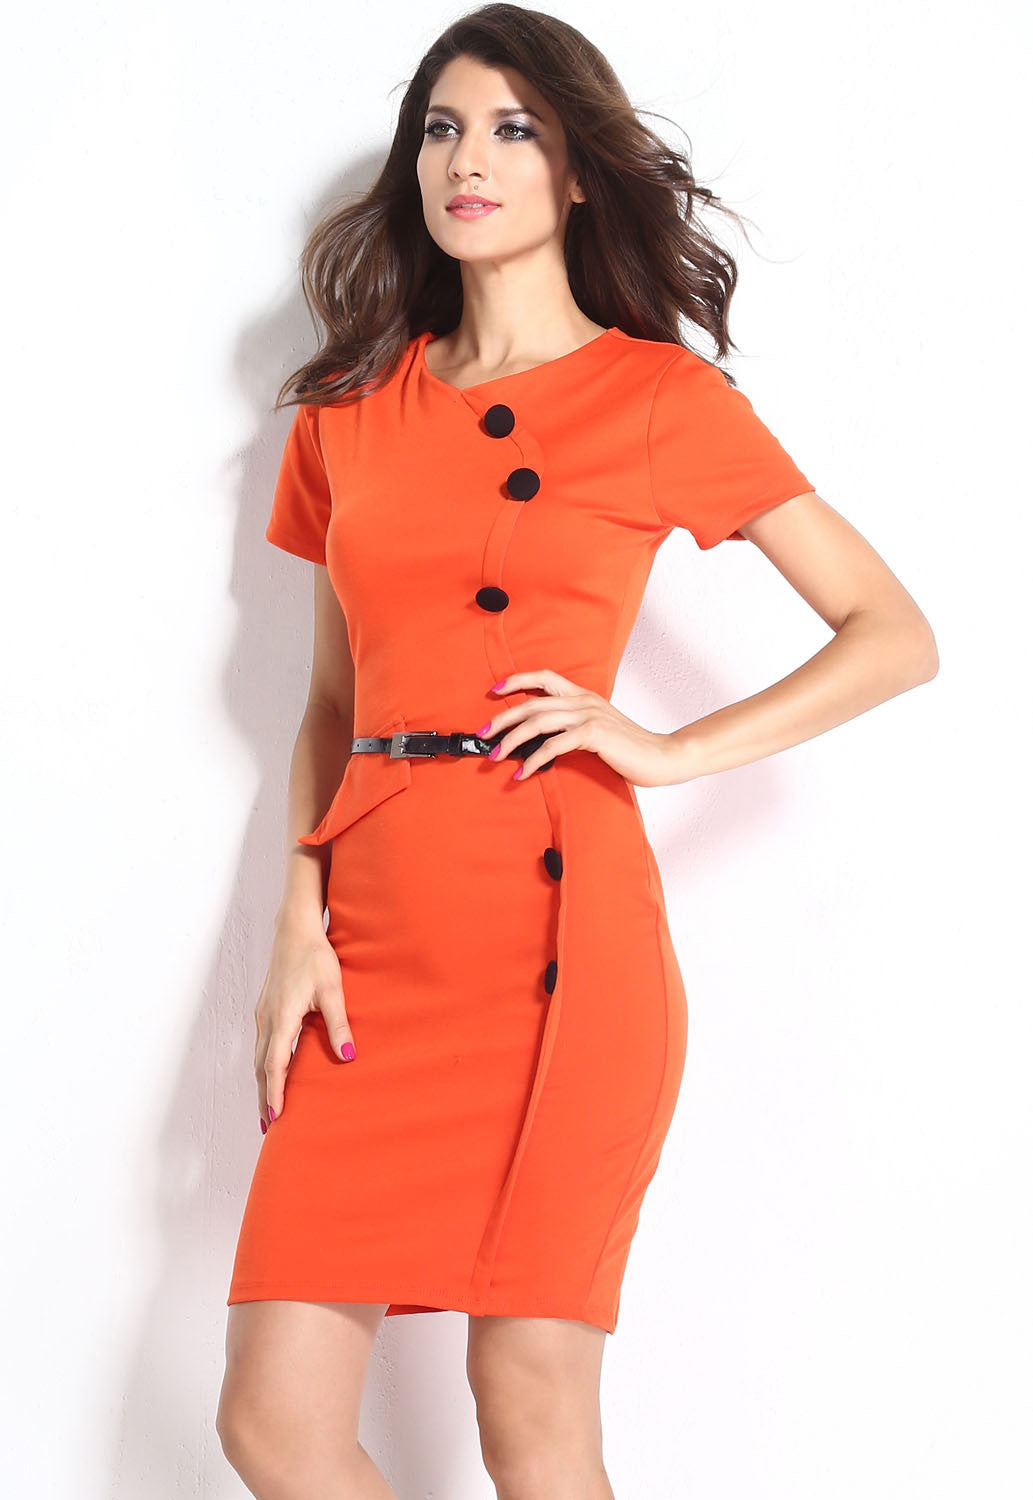 Formal Button Orange Pencil Vintage Pinup Signal Fitted Party Shift Sheath Knee-Length